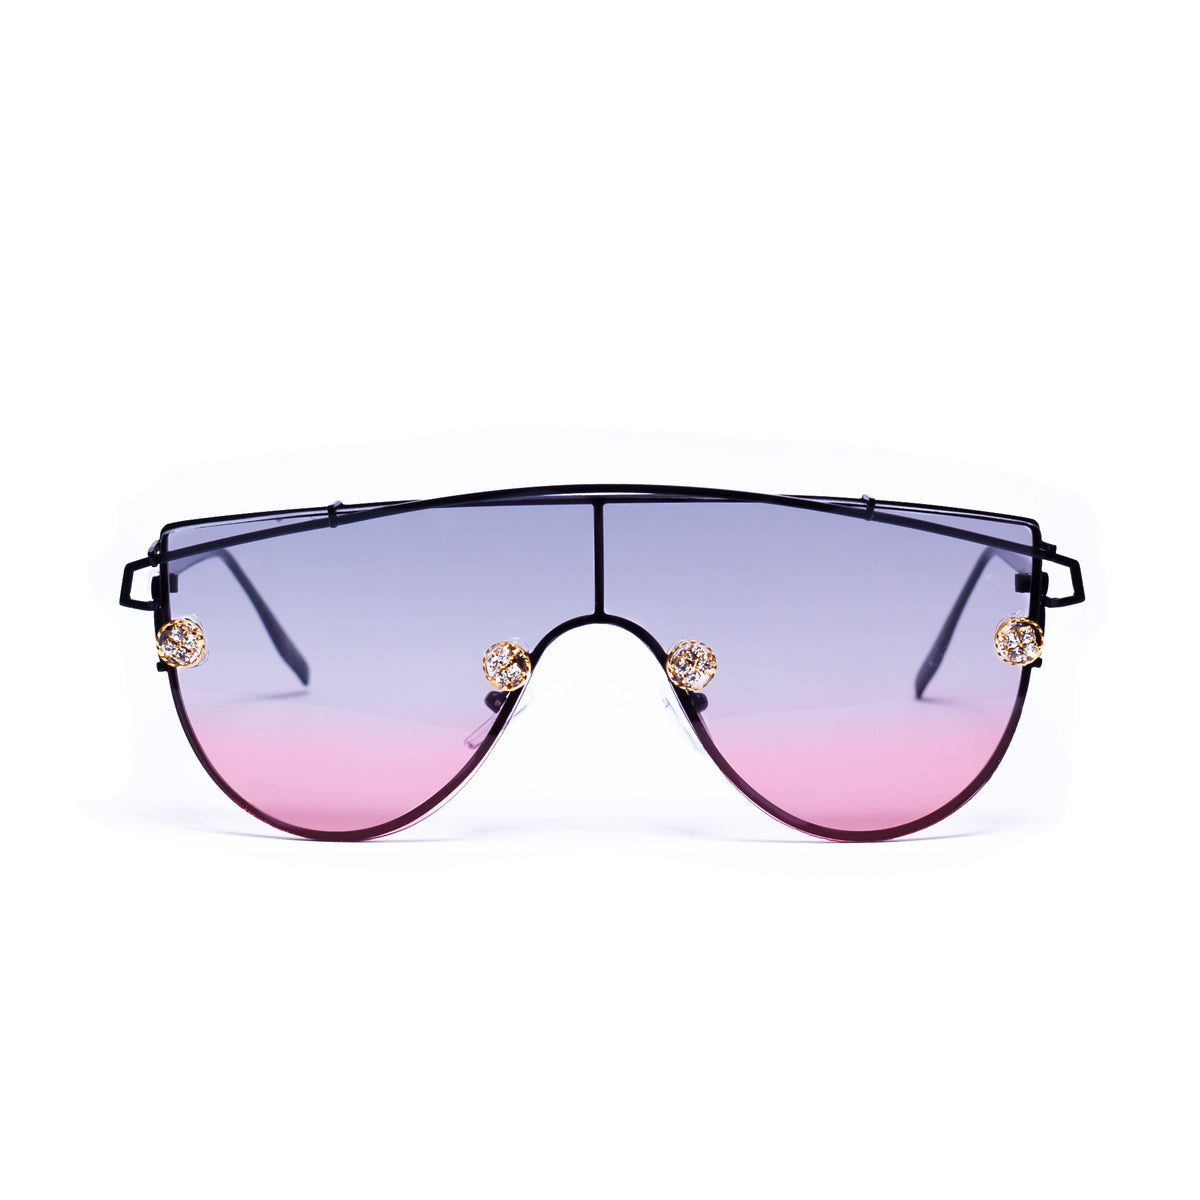 AT YOUR BEST SUNNIES  SUNNIES + OPTICS Sunglasses Collection, Tnemnroda man- NRODA